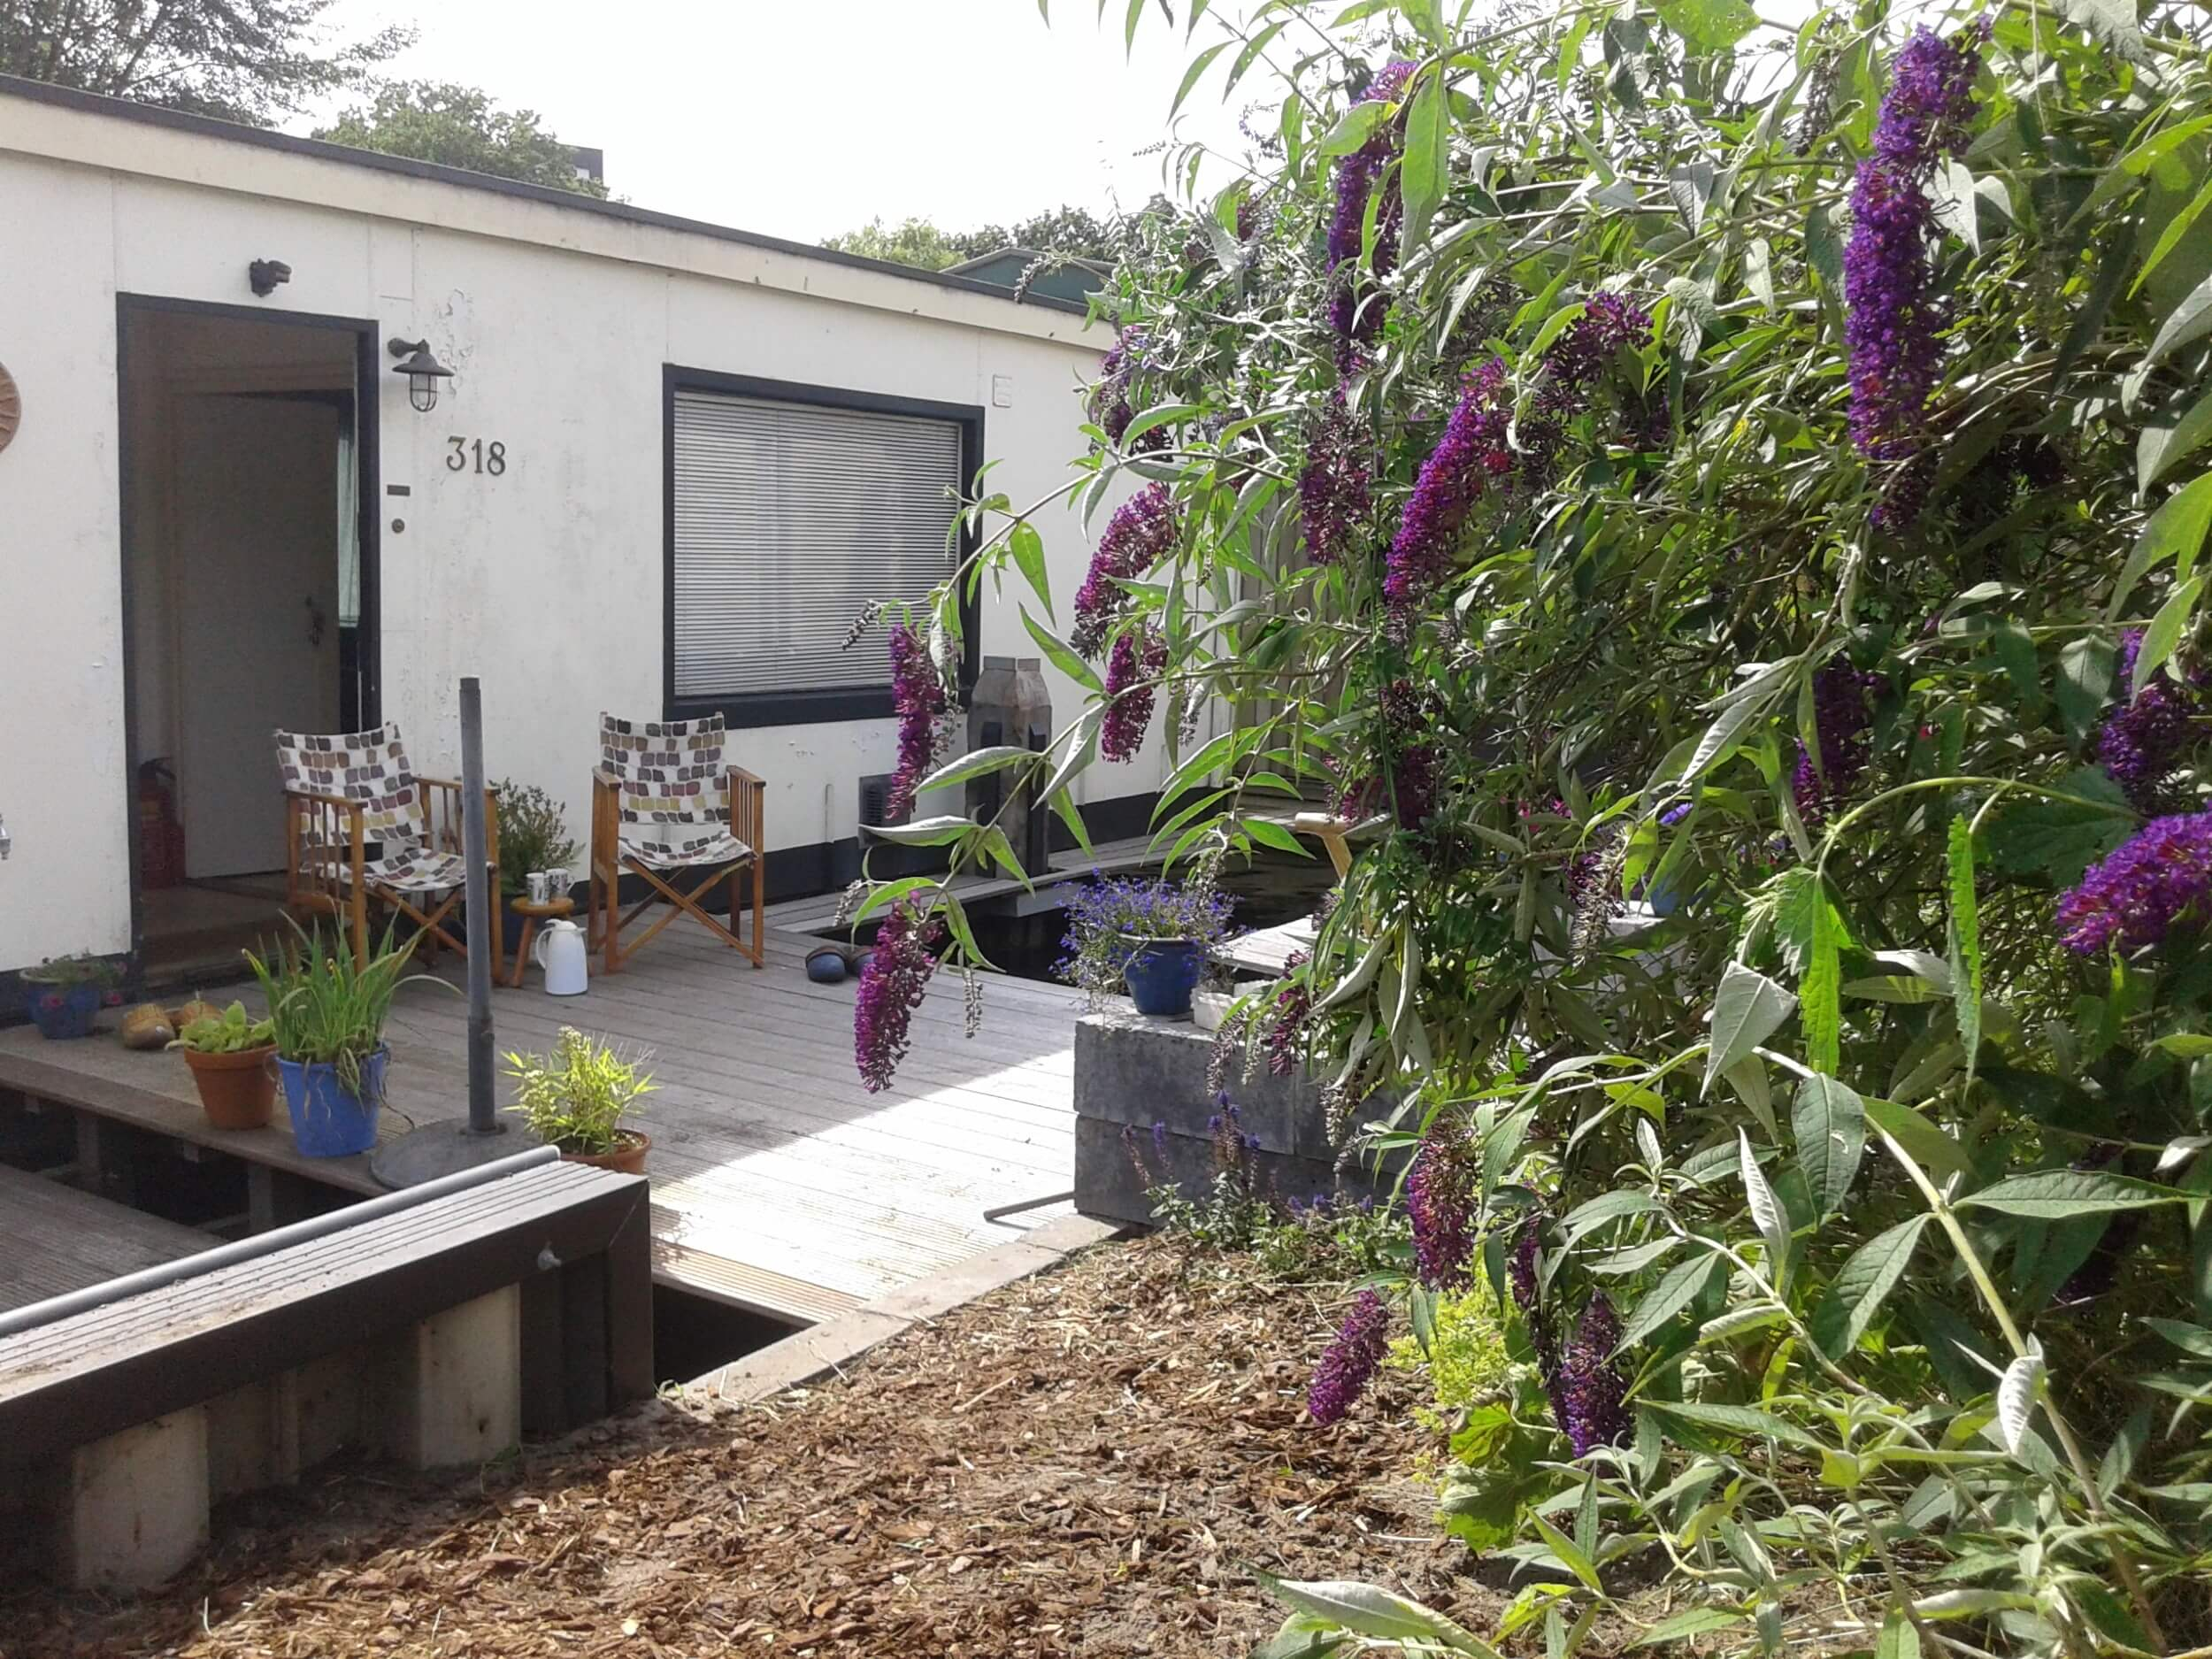 De Tuin - Houseboat Harmony - Bed & Breakfast Utrecht (4)